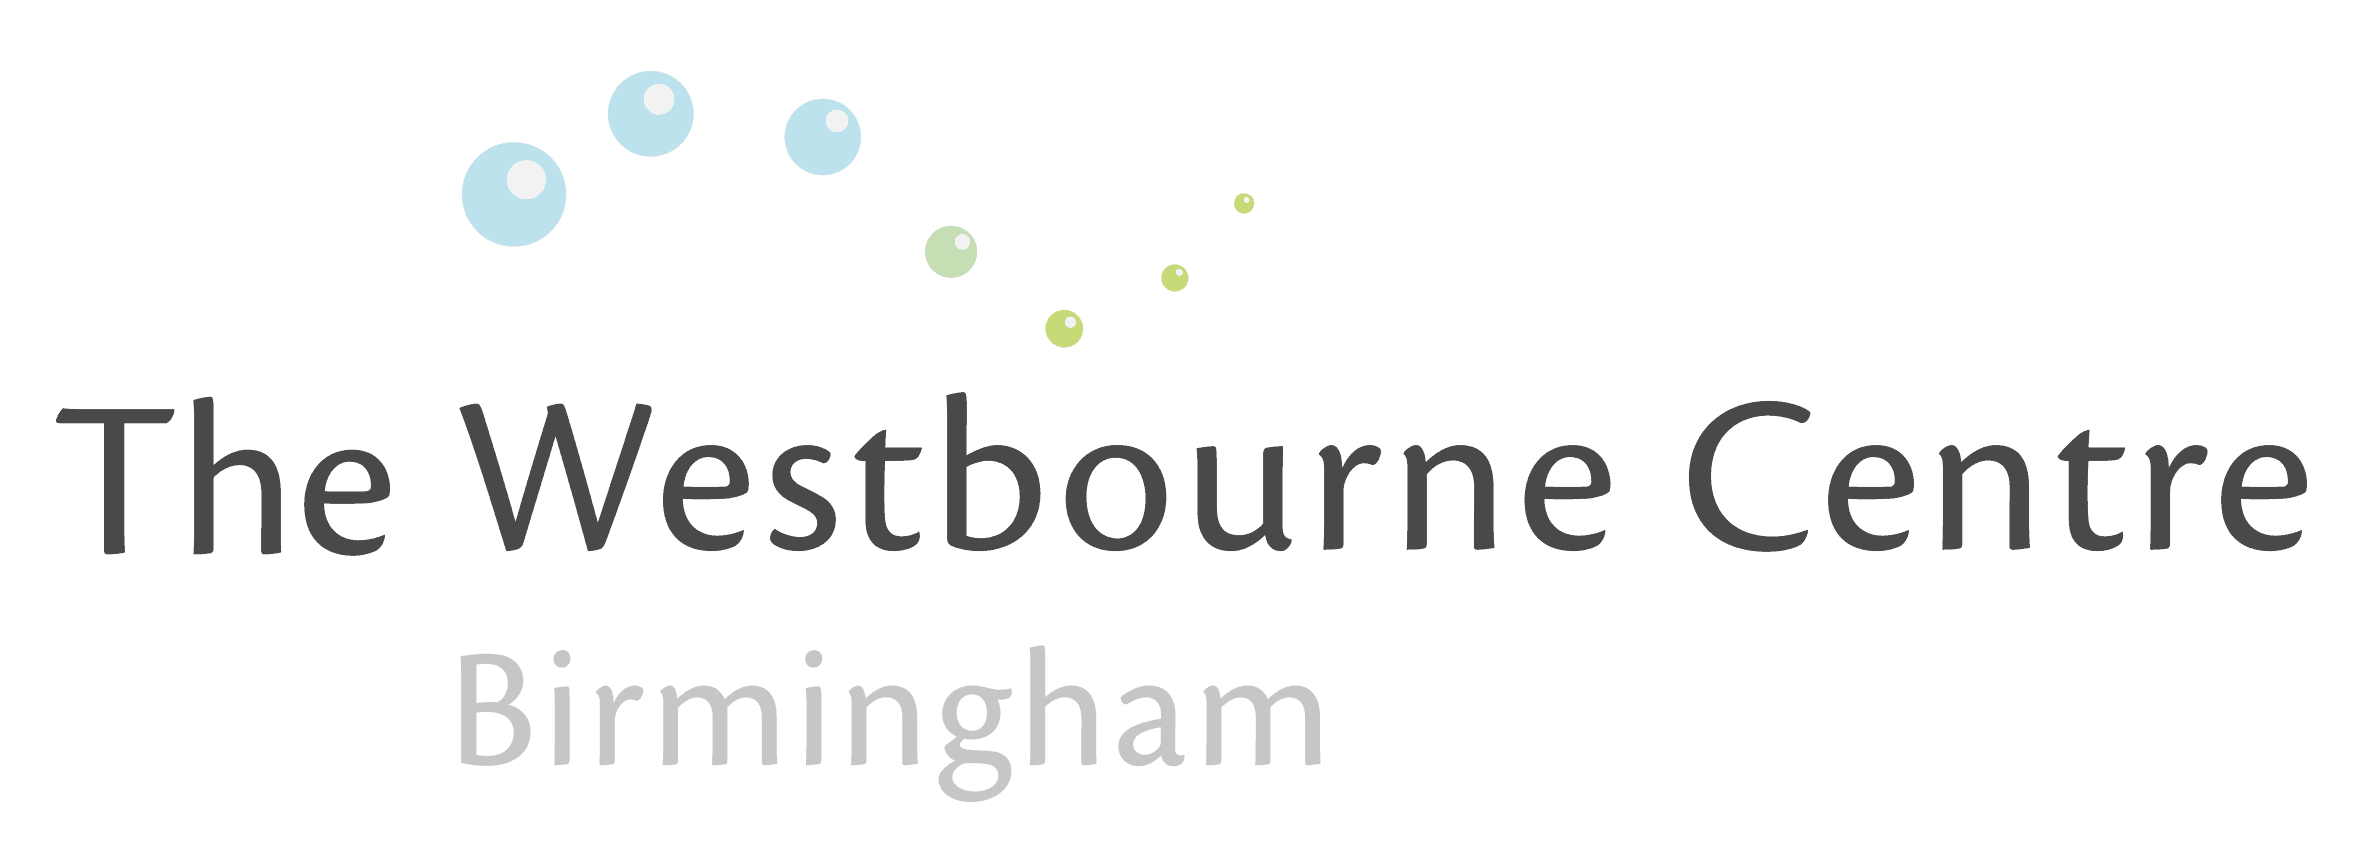 Westboure-Centre-Logo-Colour-Transparent